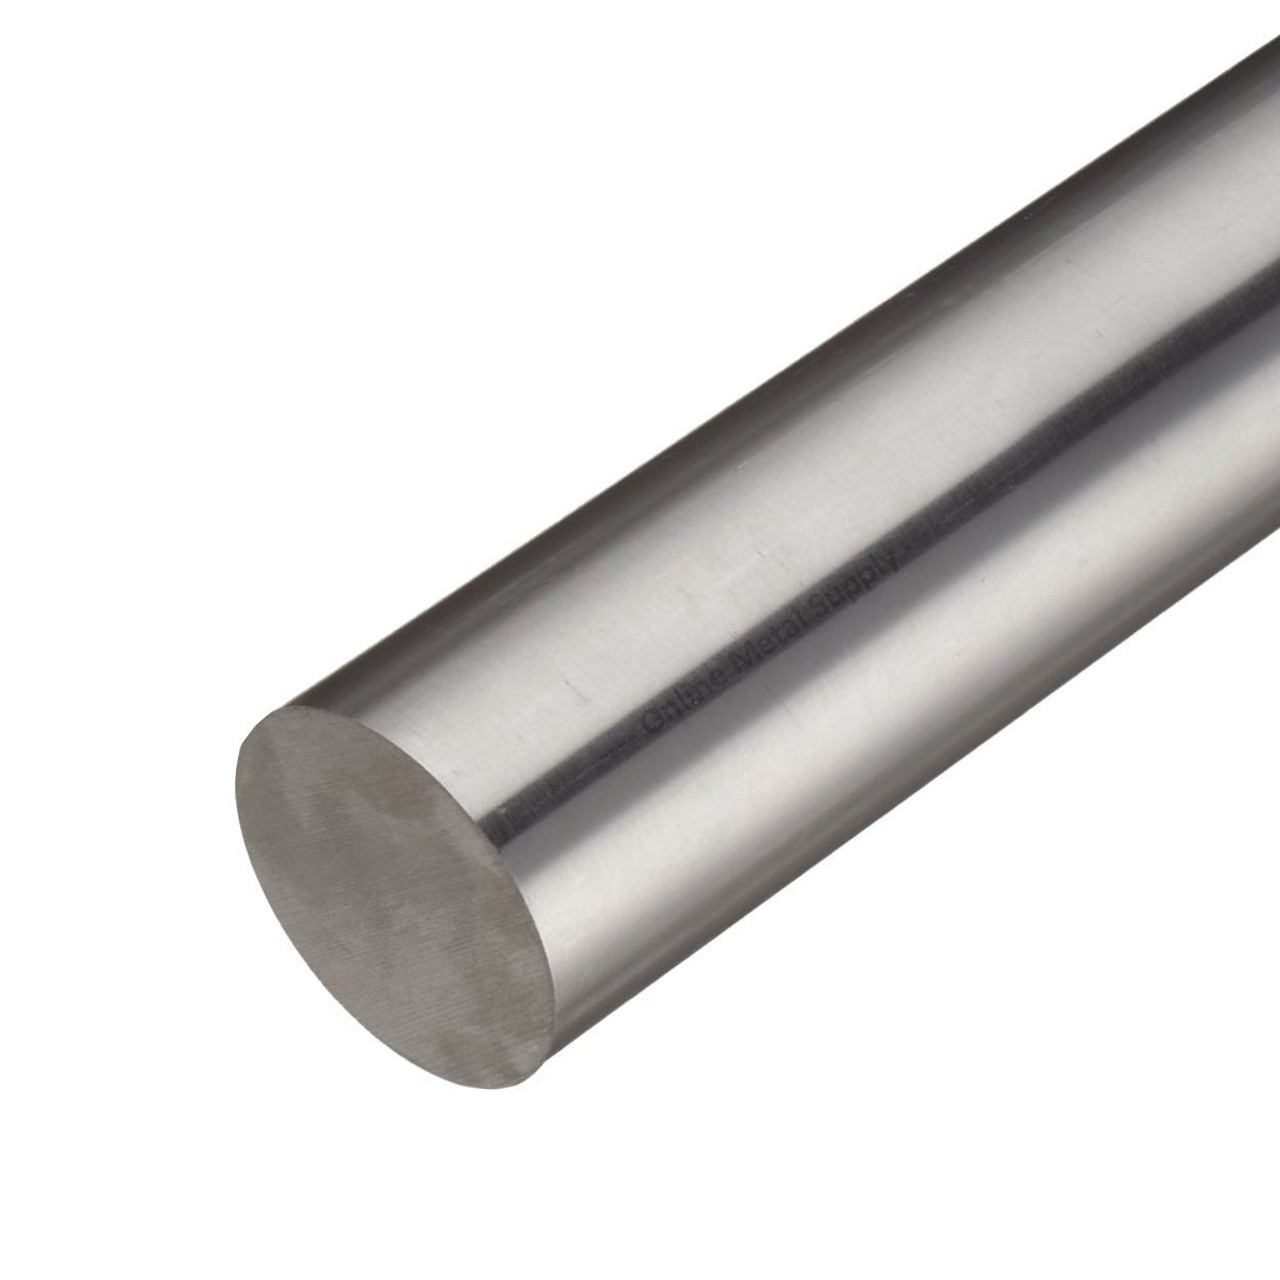 17-4 Stainless Steel Round Rod, 1.125 (1-1/8 inch) x 24 inches